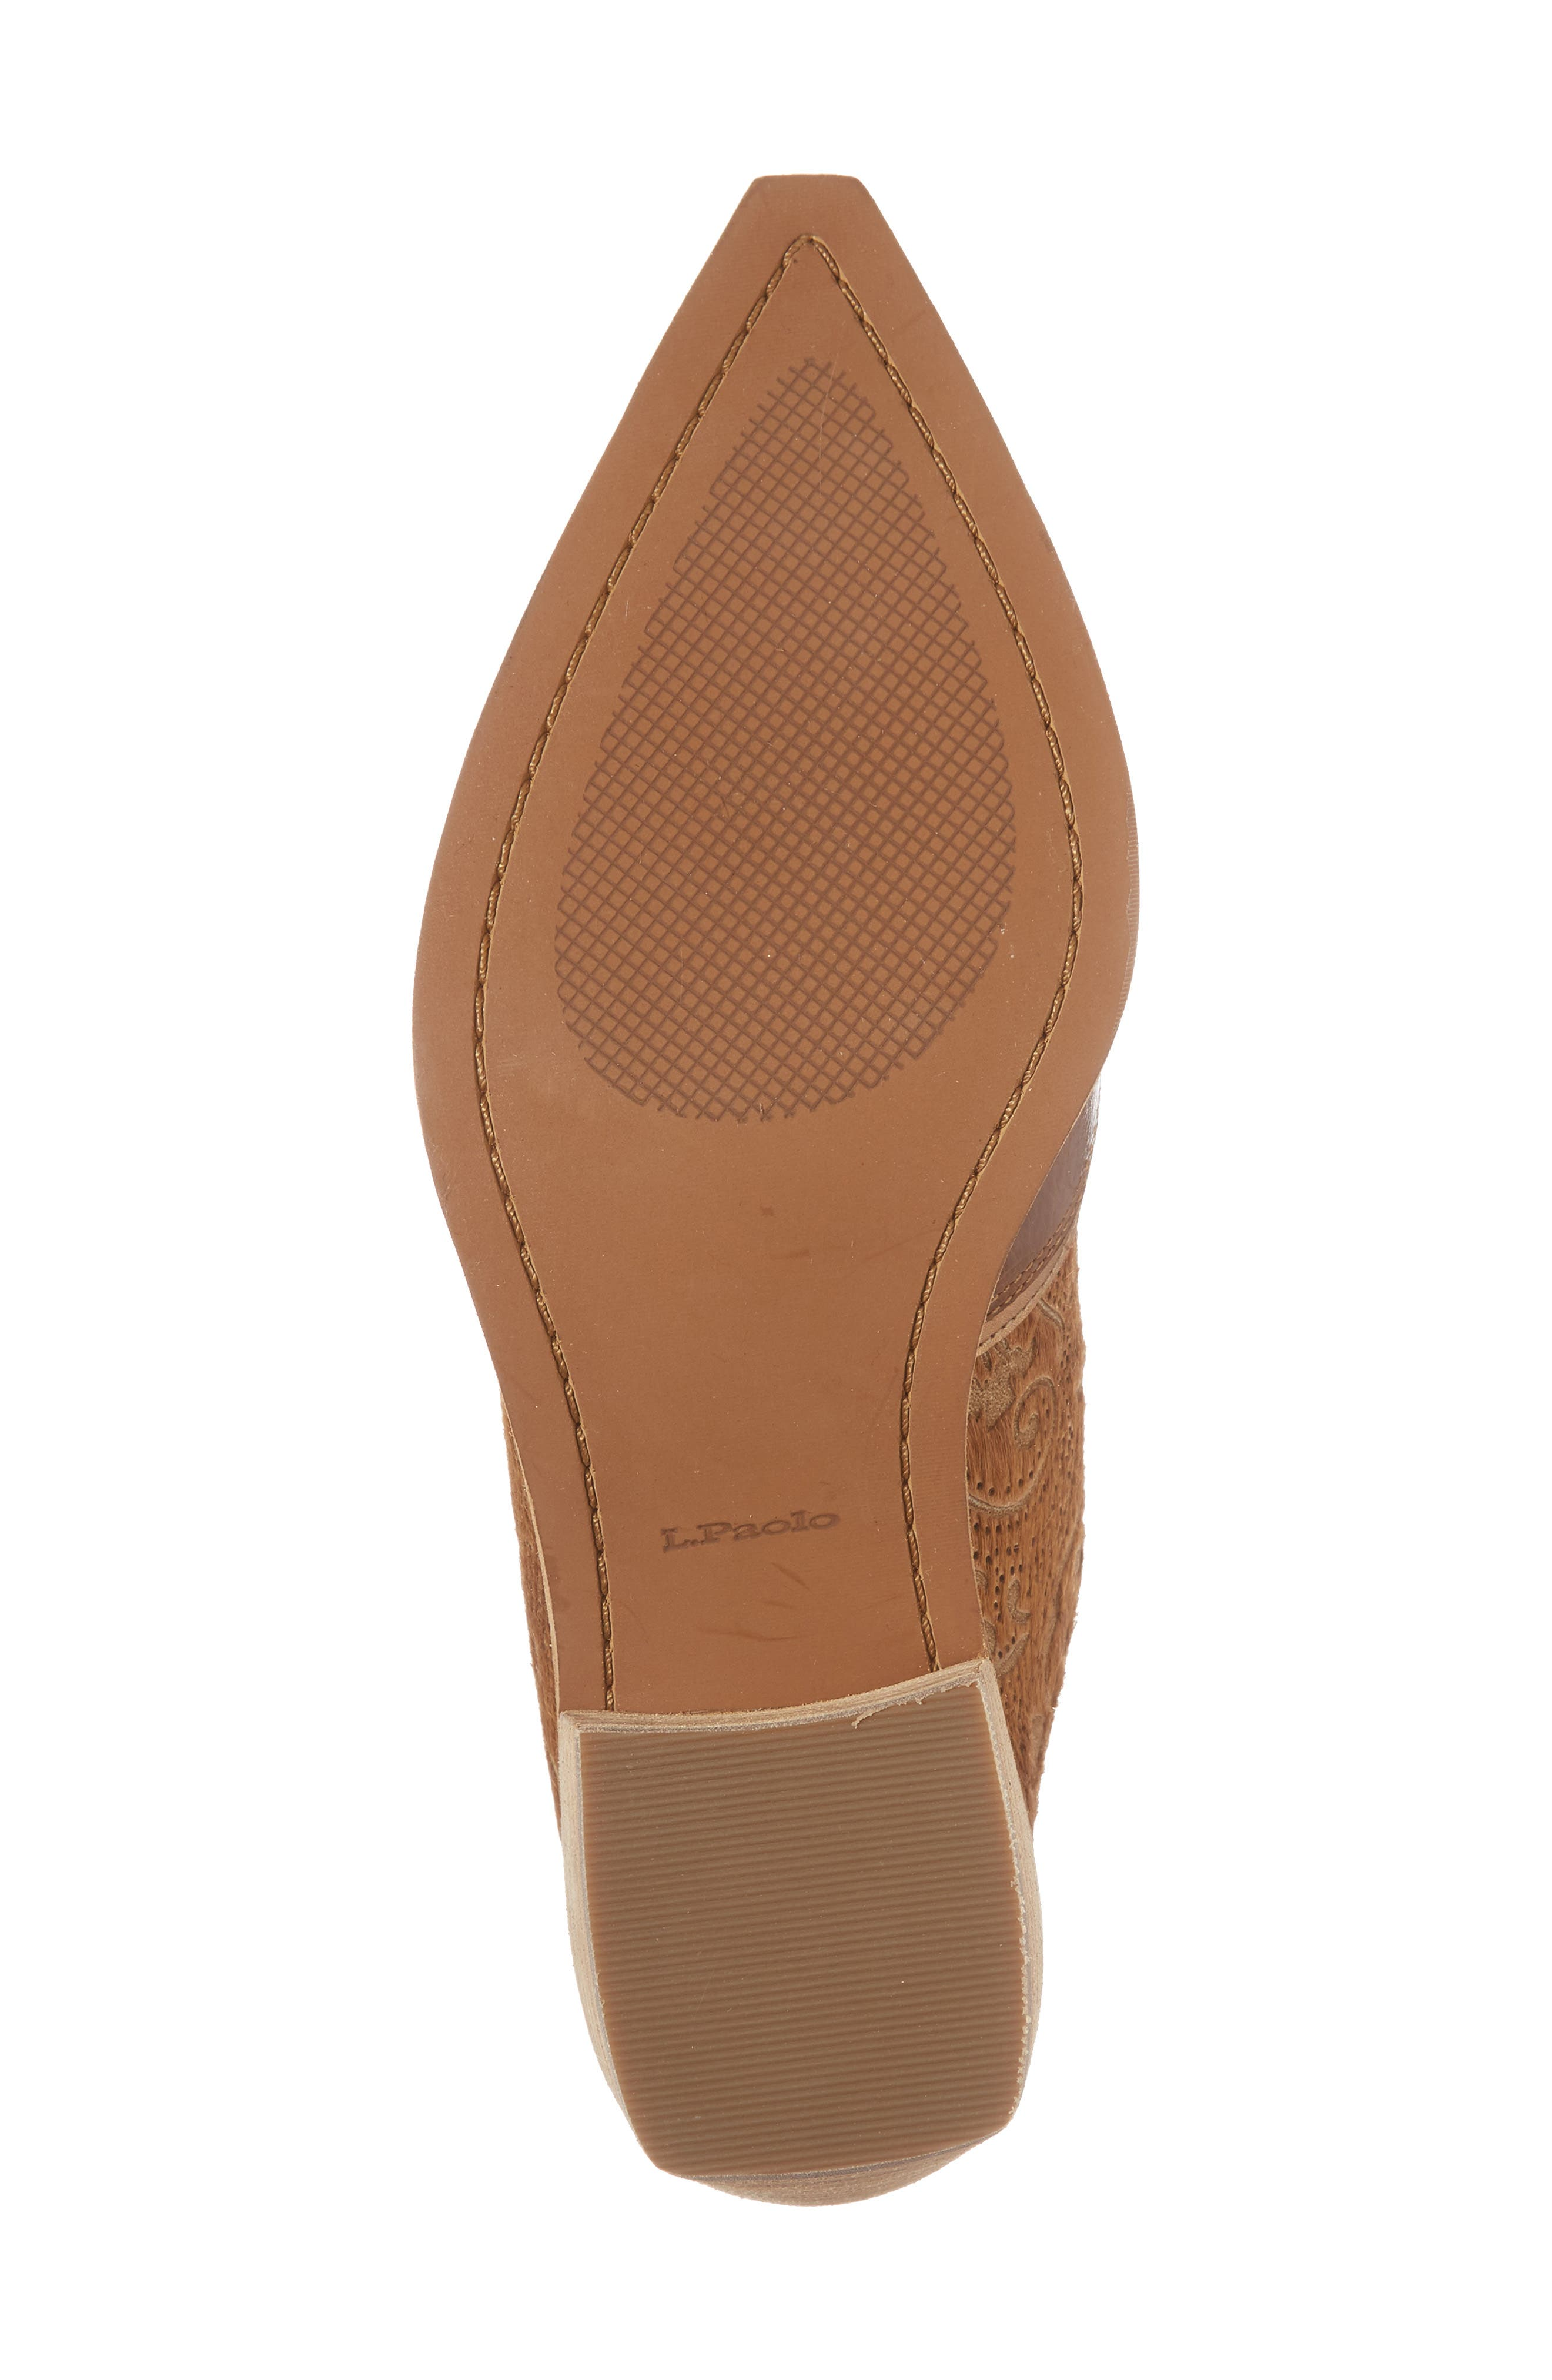 Waylon Genuine Calf Hair Western Mule,                             Alternate thumbnail 6, color,                             Camel Leather